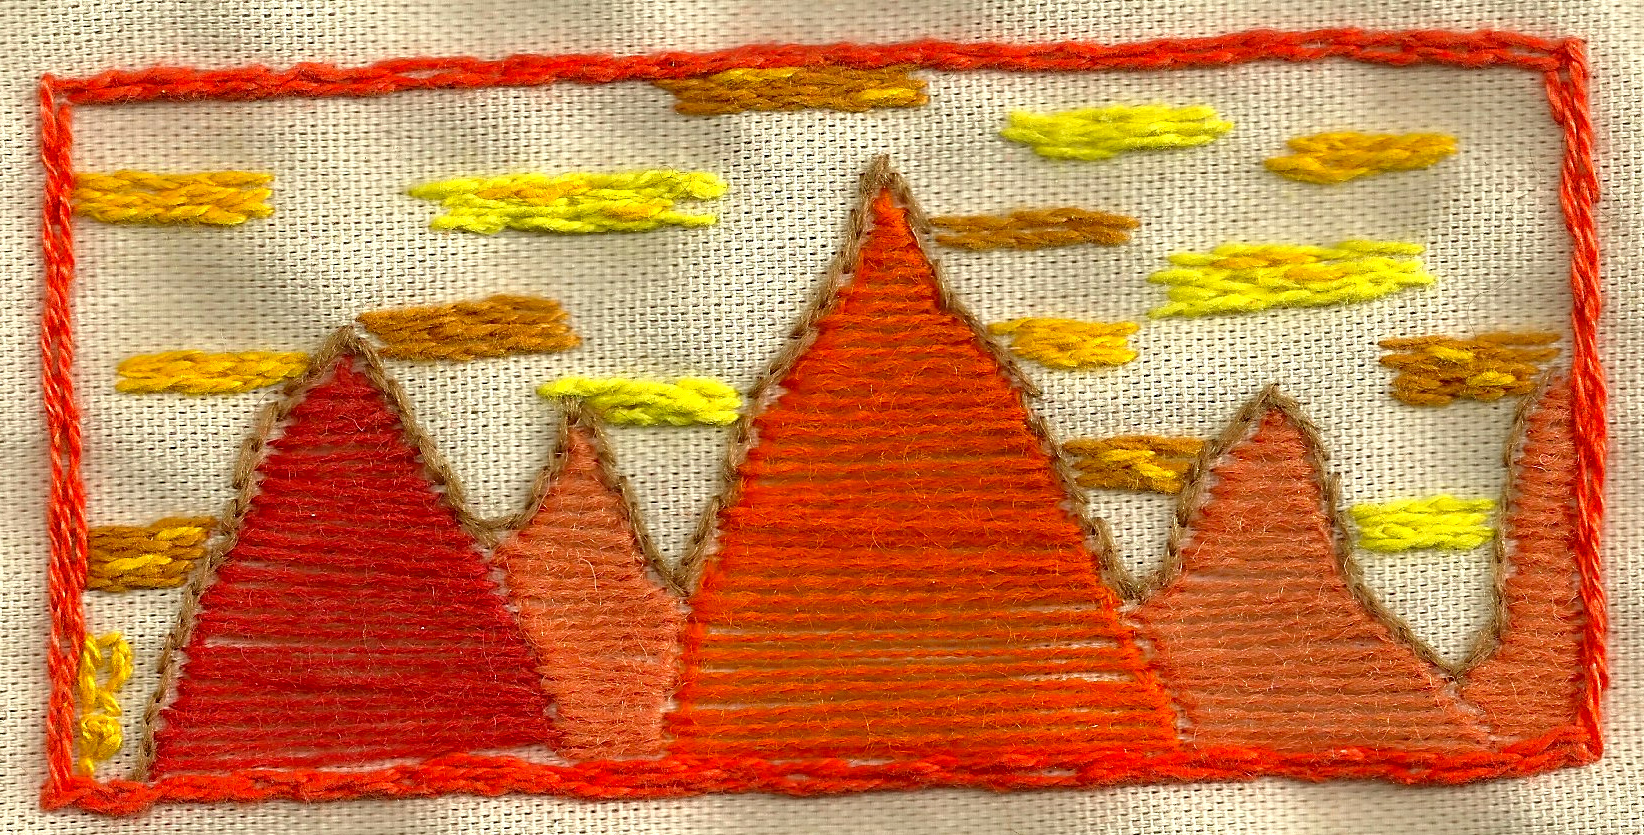 The First Embroidery   Embroidery on canvas  2013